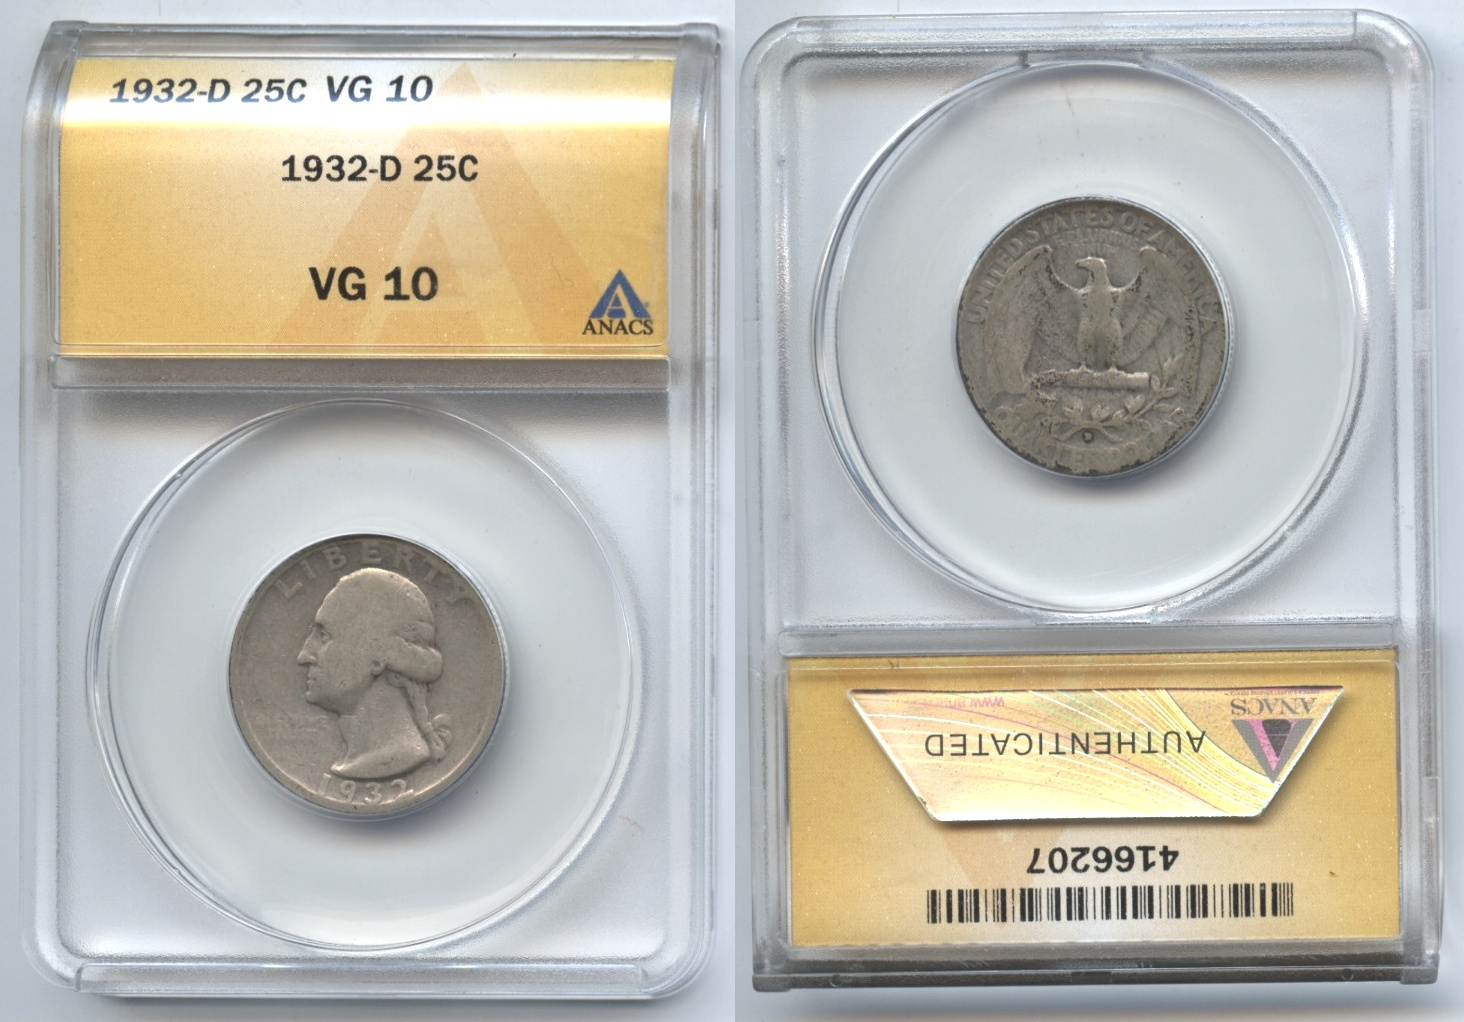 1932-D Washington Quarter ANACS VG-10